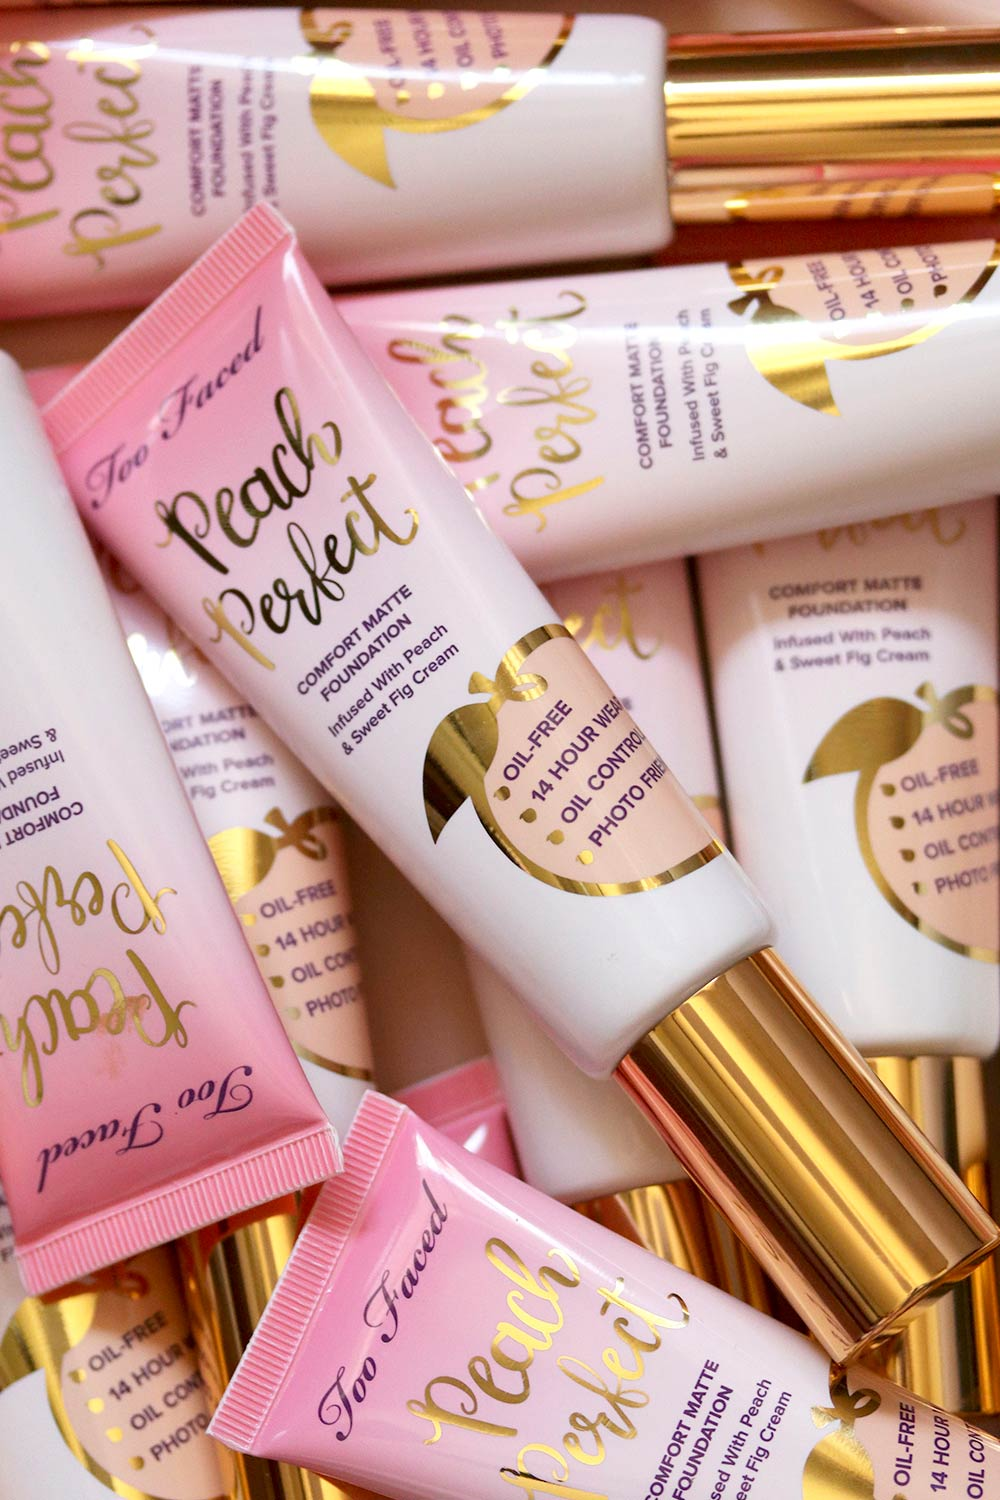 Too Faced Peach Perfect Comfort Matte Foundation What A Nice Surprise From Too Faced Makeup And Beauty Blog